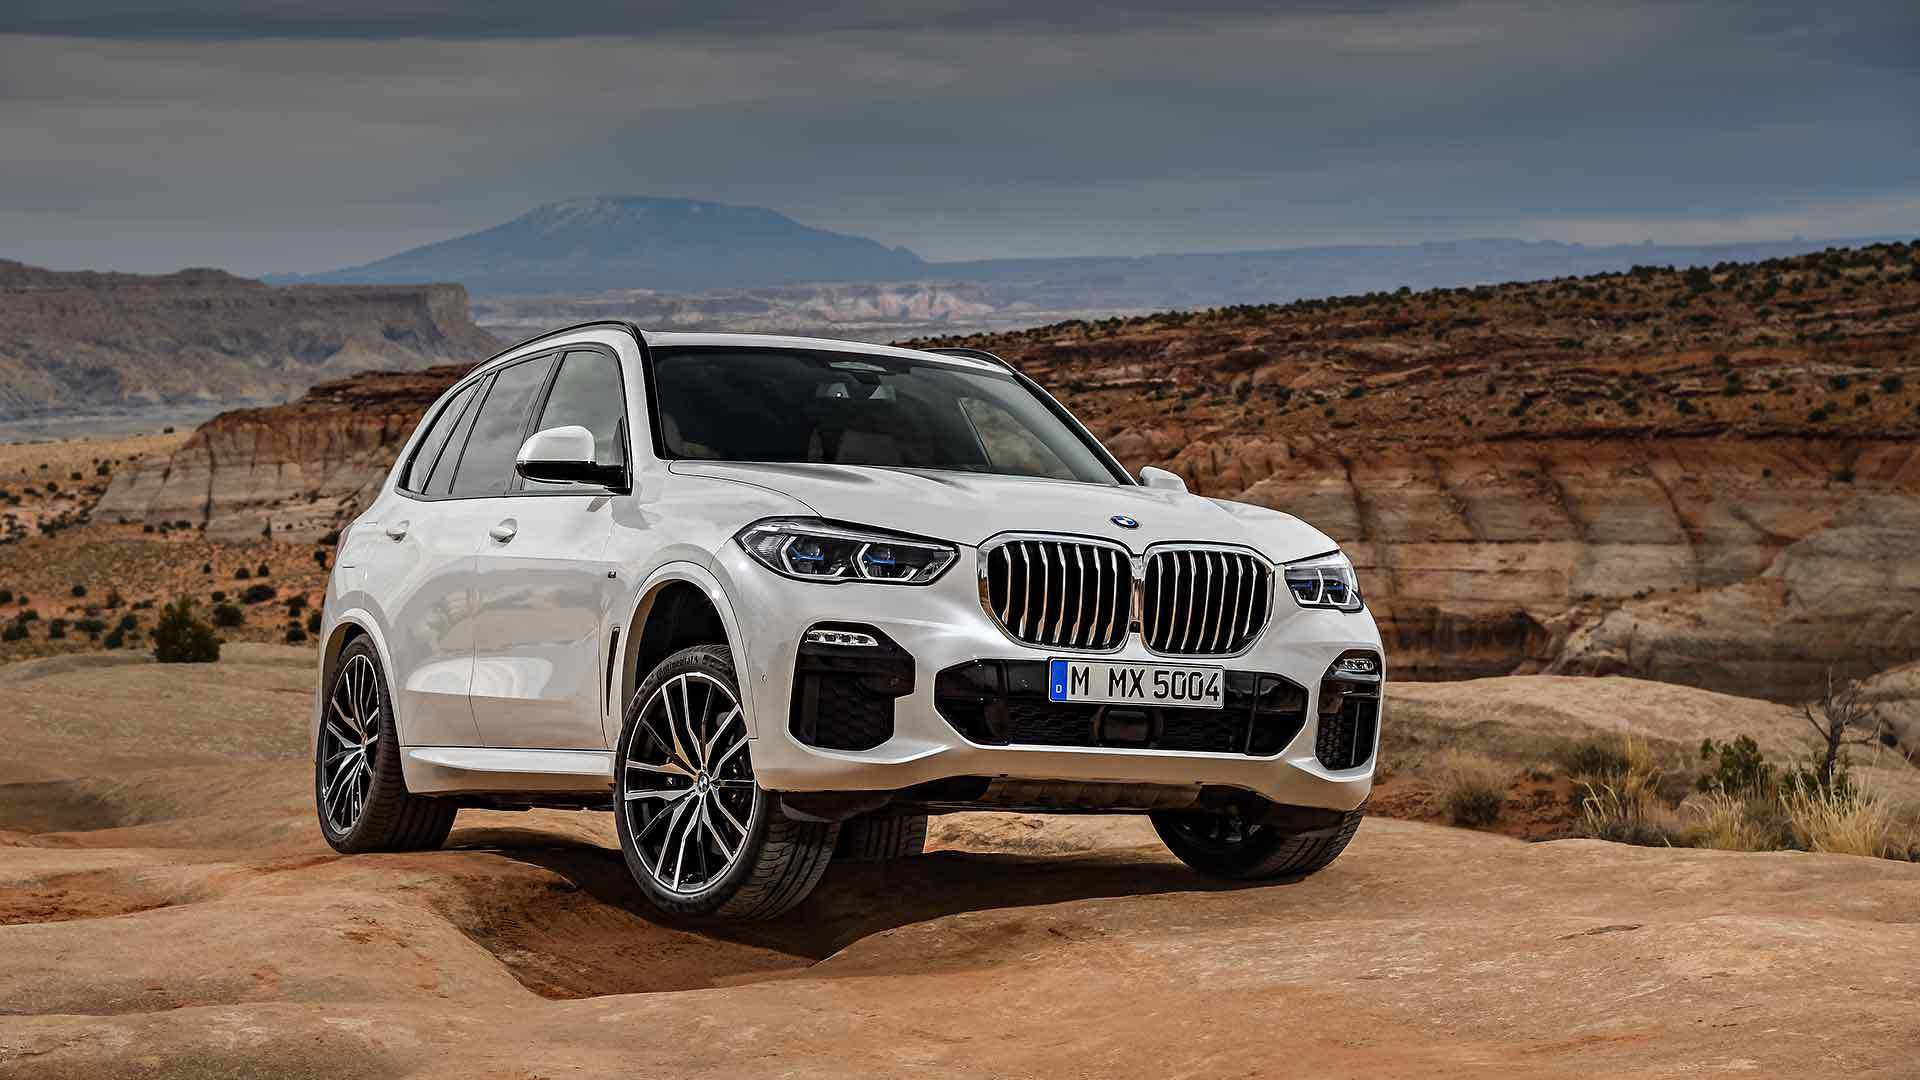 60 Great When Is The Bmw X5 2019 Release Date Engine Exterior for When Is The Bmw X5 2019 Release Date Engine